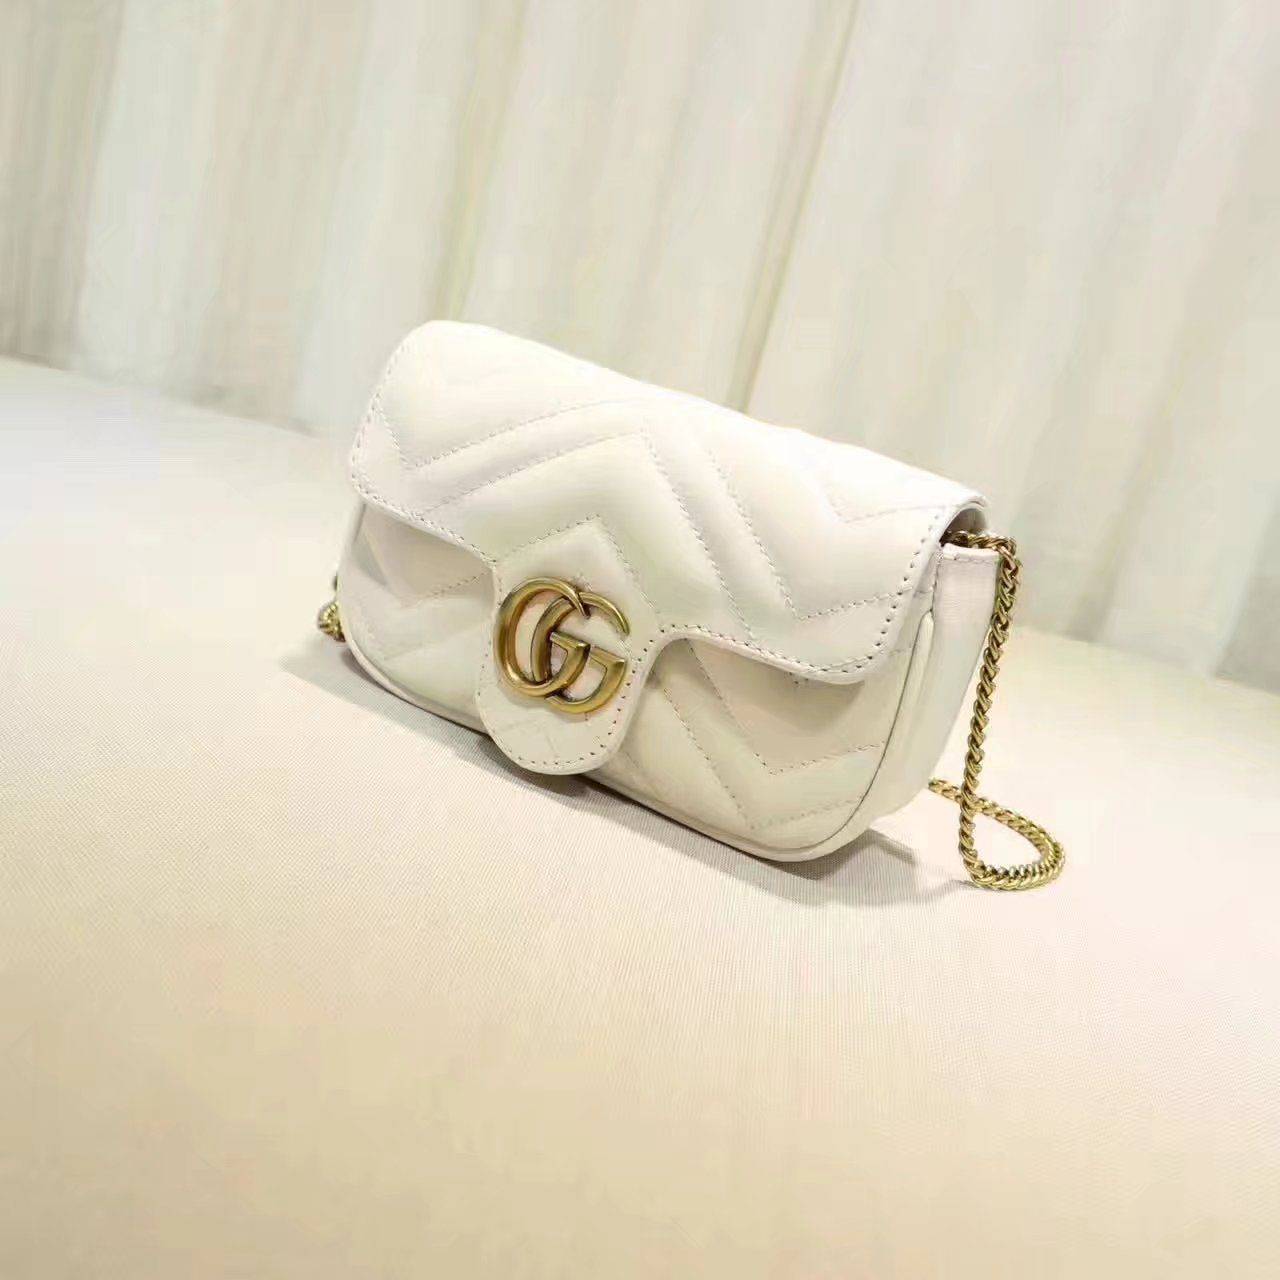 3b472370ecd Replica GUCCI GG Marmont matelasse leather super mini bag white ID 31676